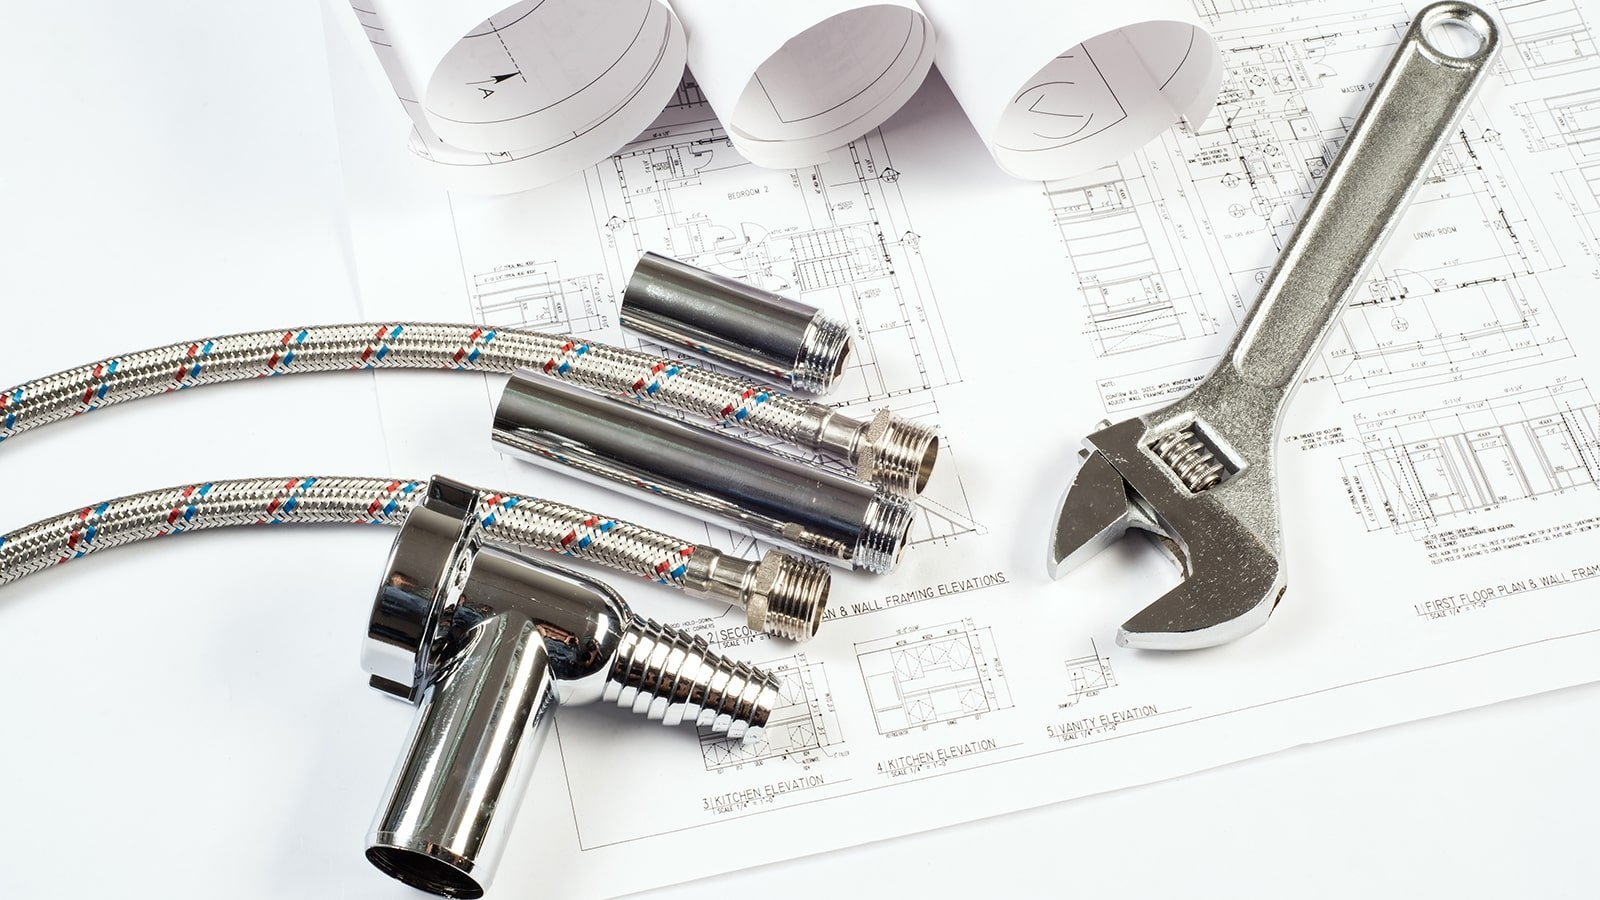 Plumbing diagrams, tools and pipes